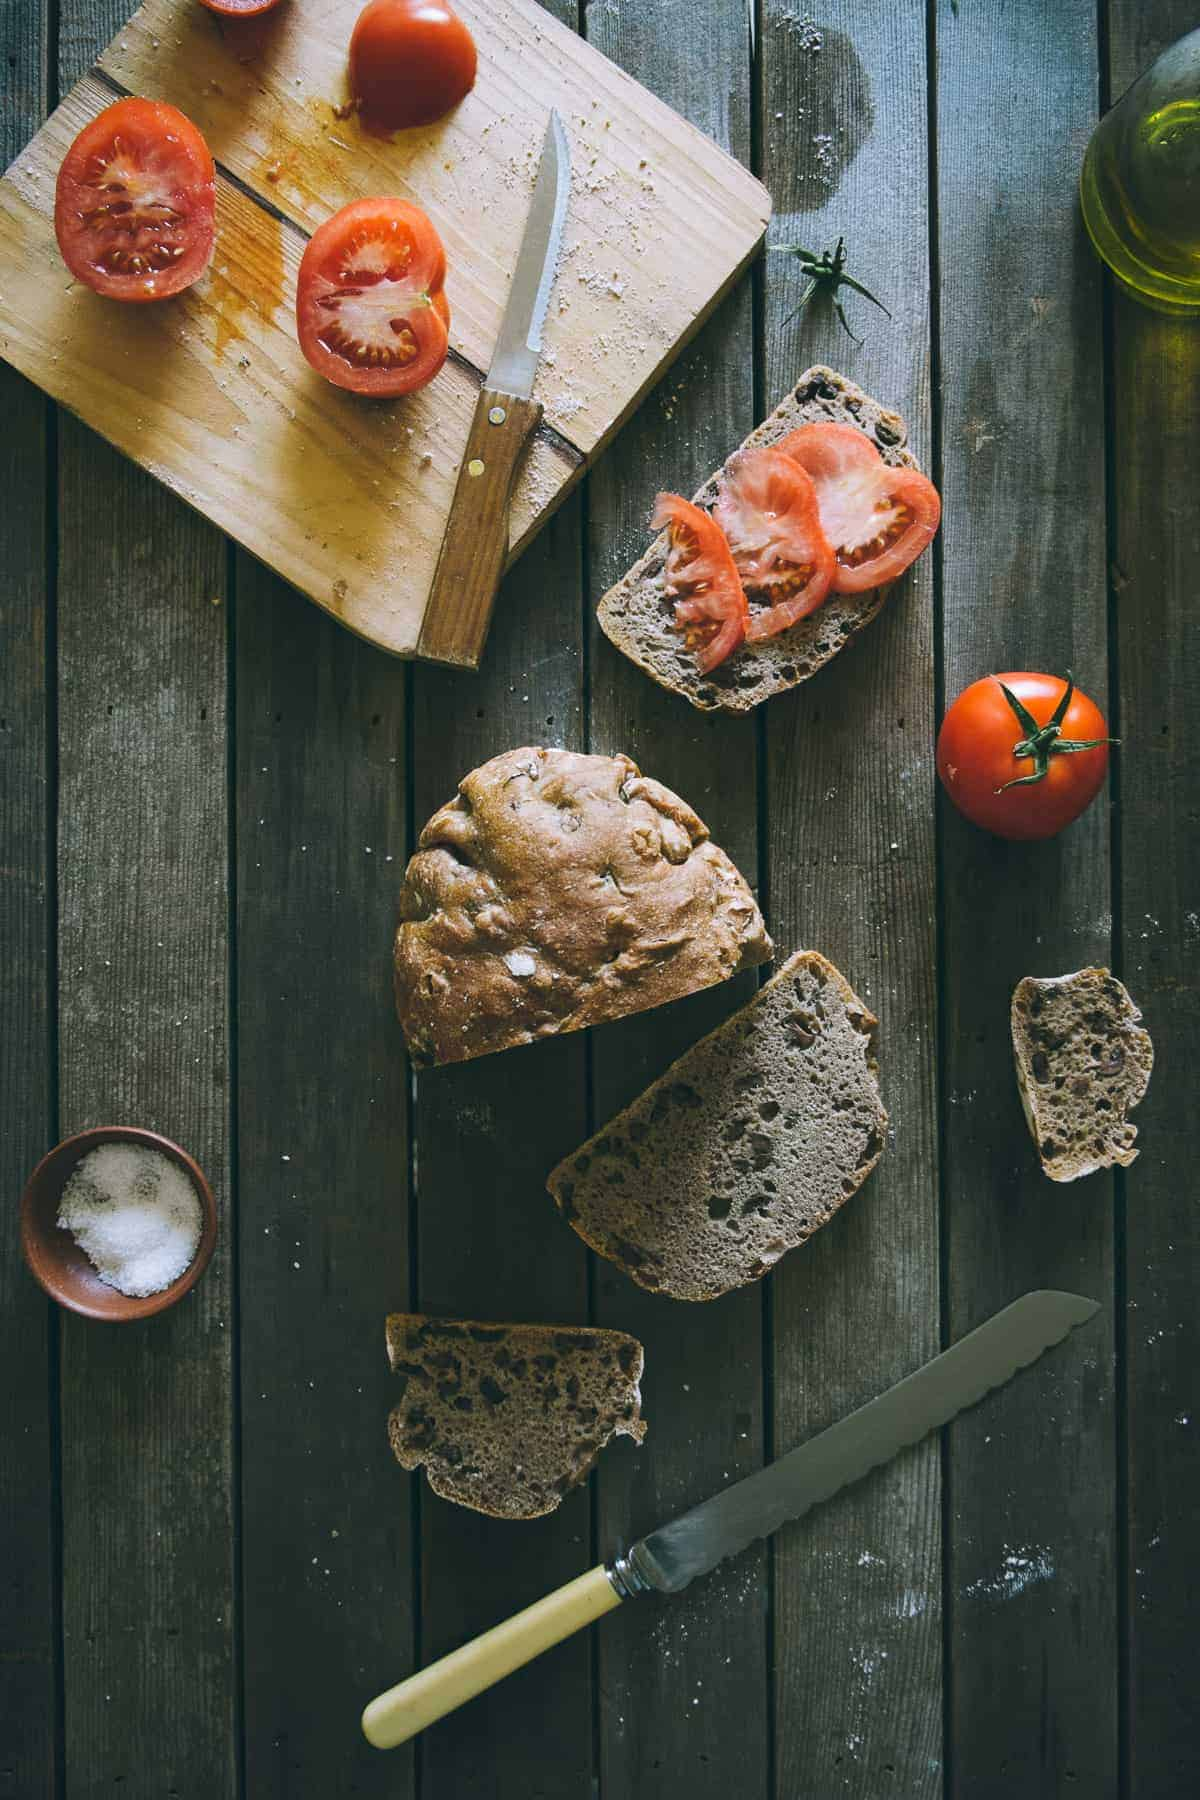 tomato slices on no knead olive bread